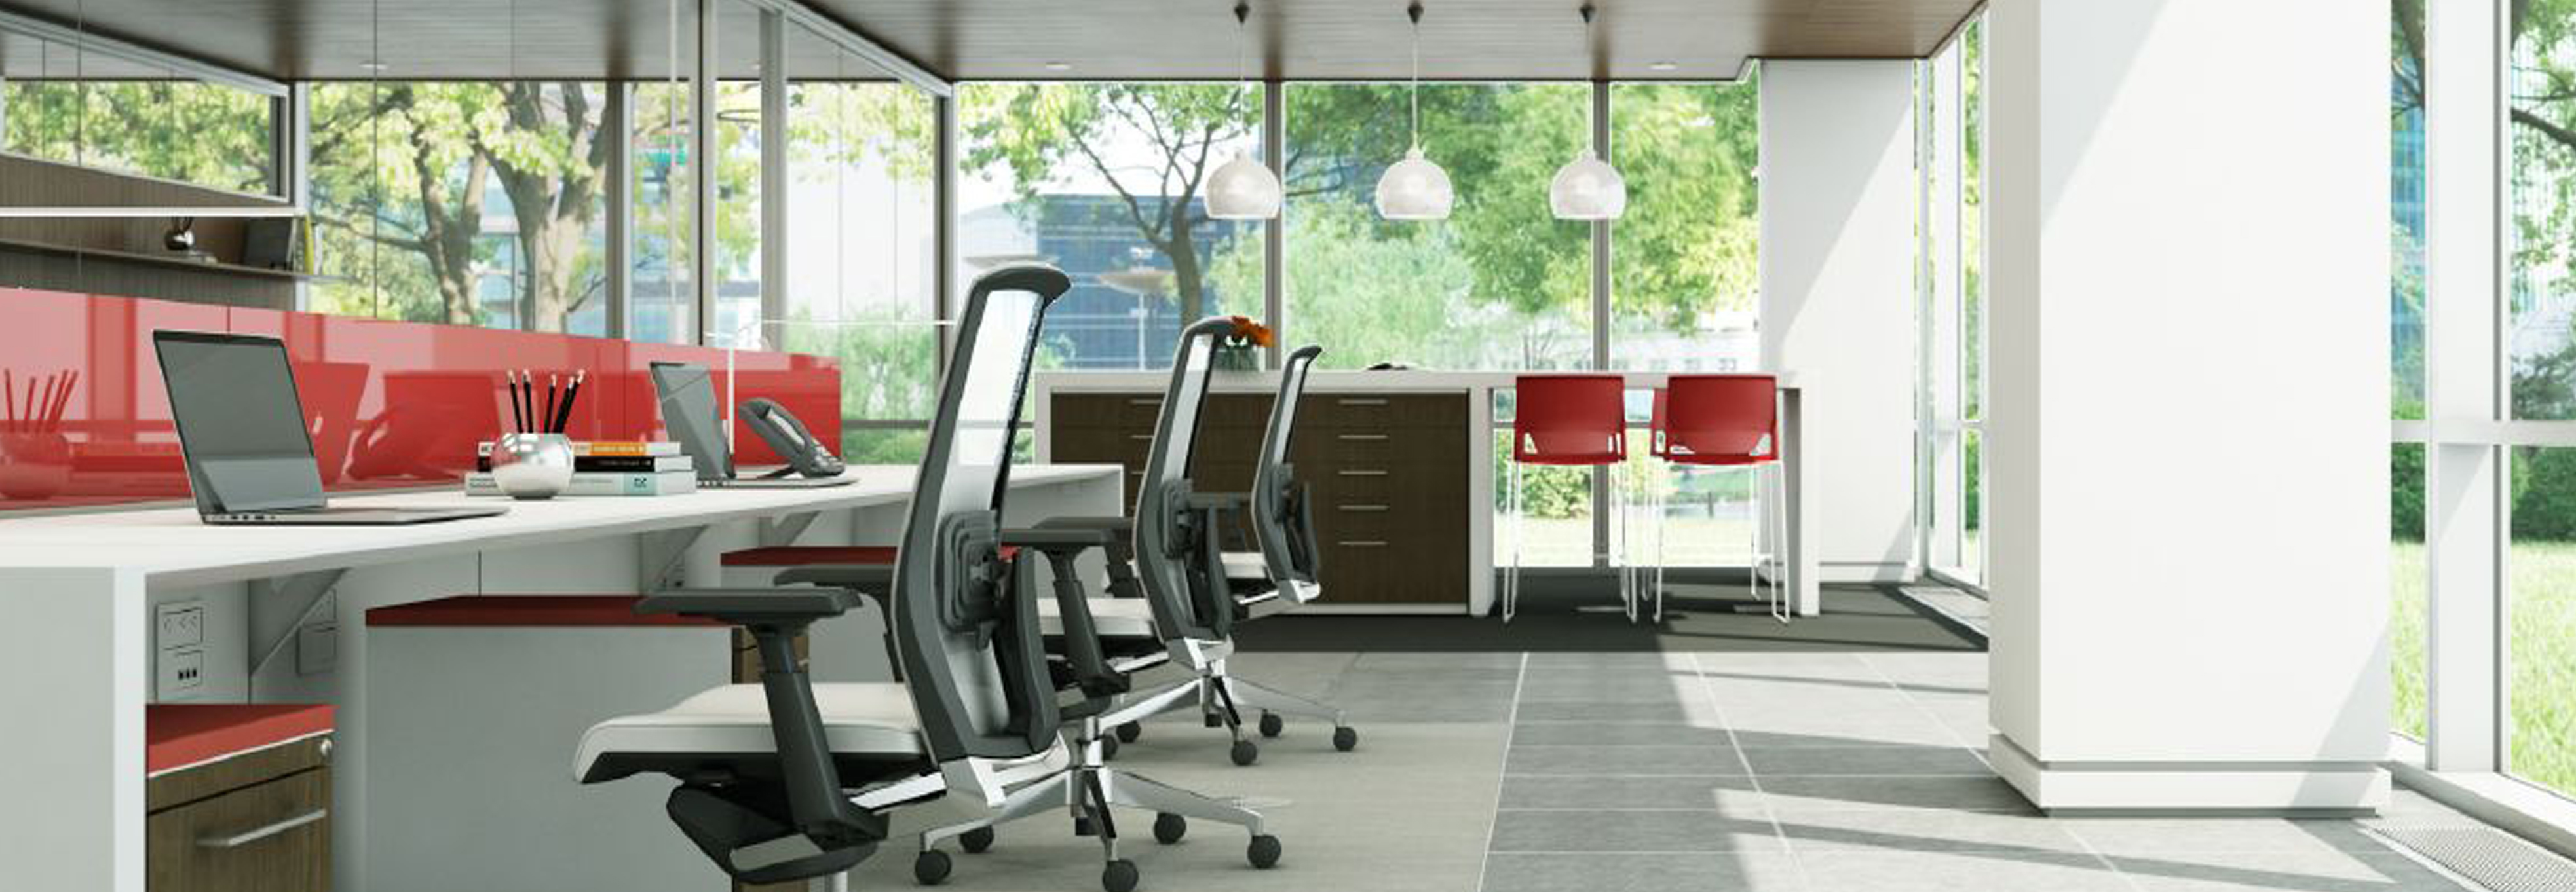 collaborative office furniture austin